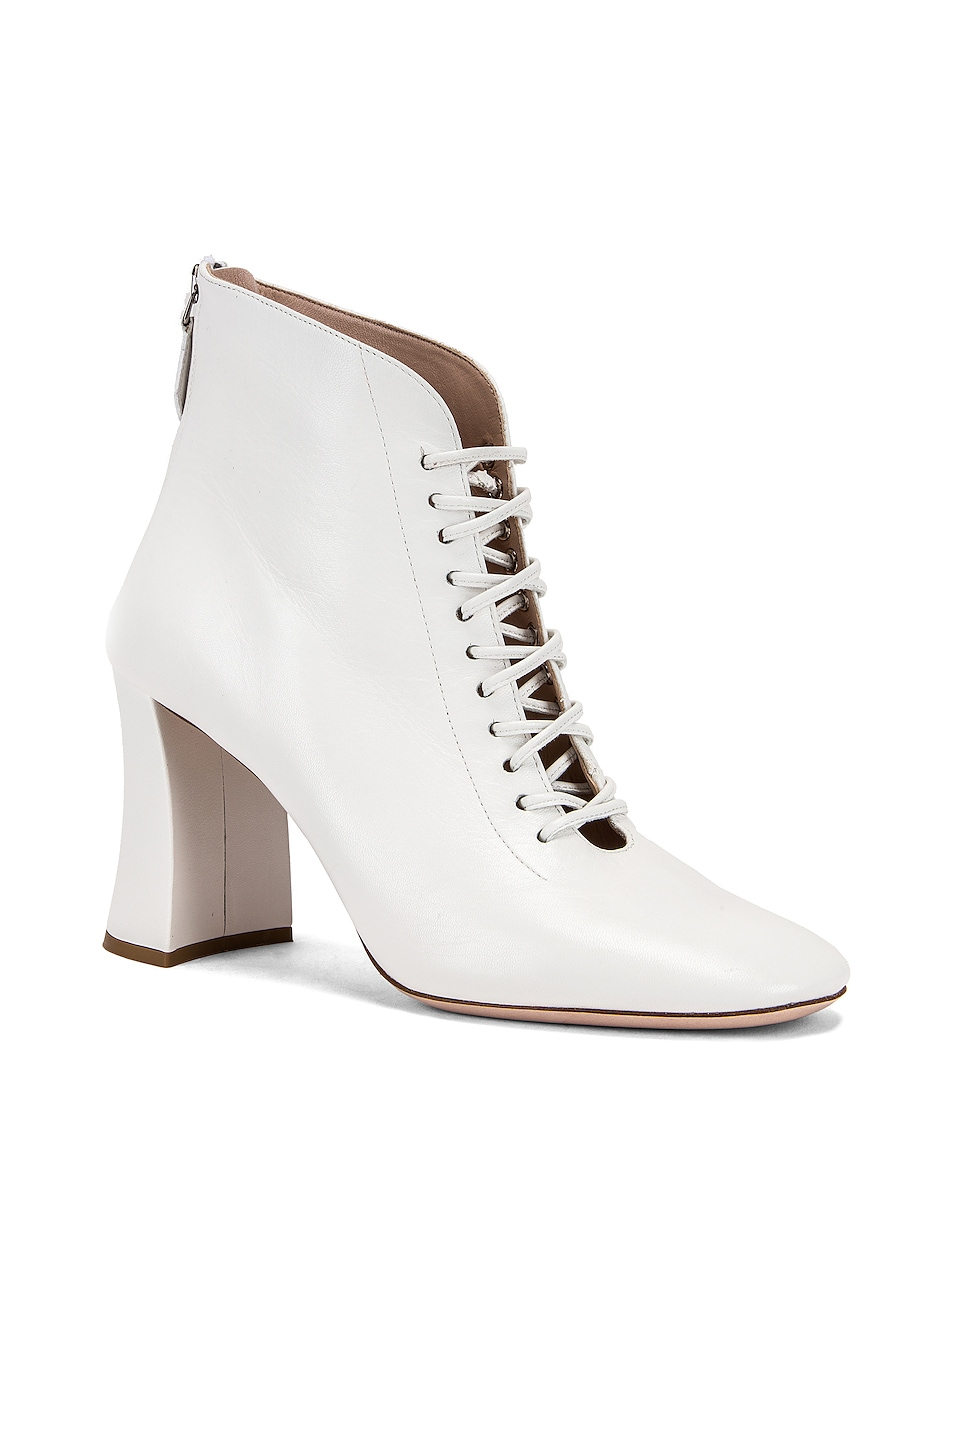 Image 2 of Miu Miu Lace Up Ankle Boots in White